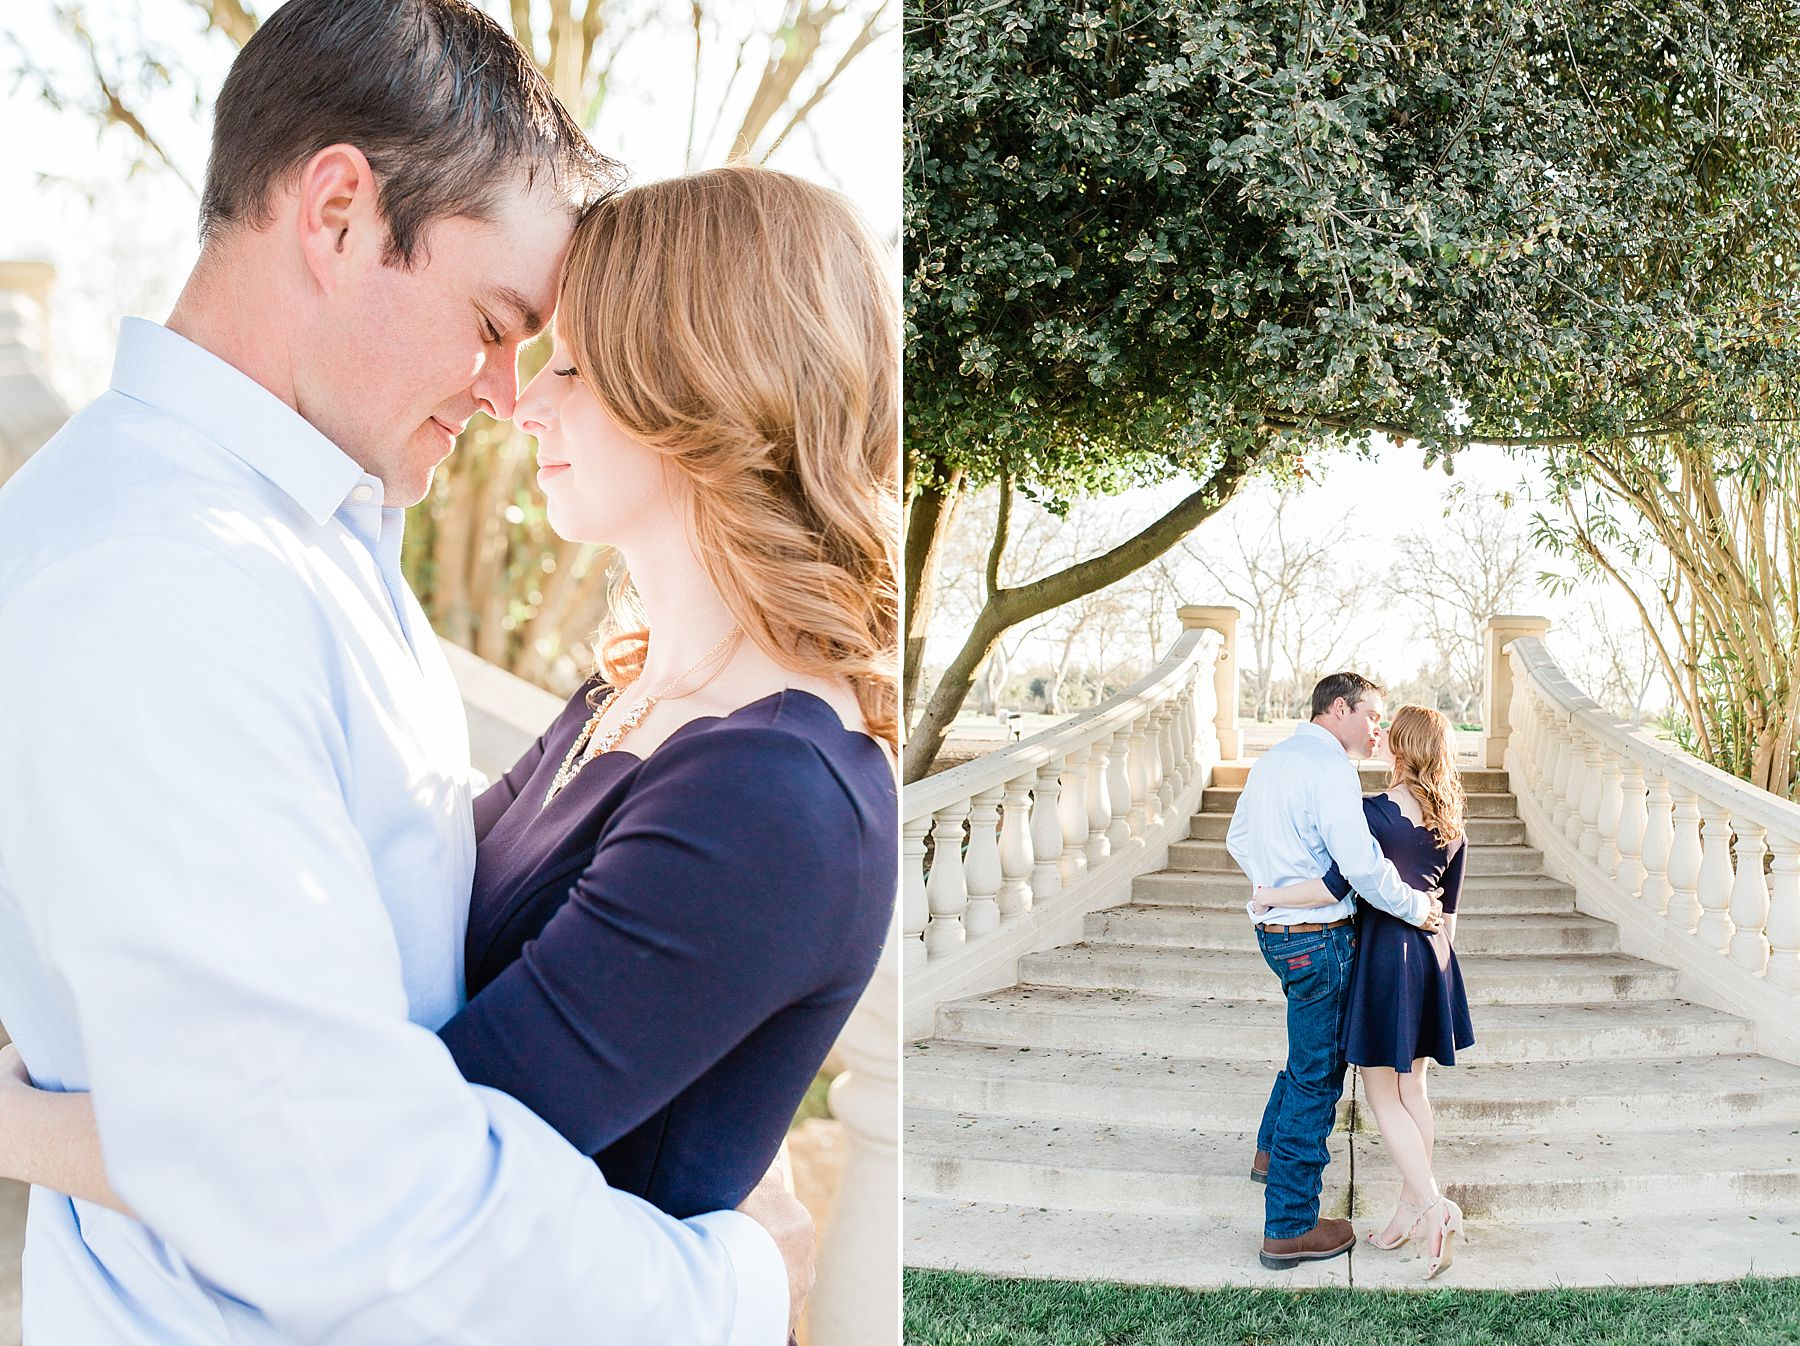 Viaggio Winery Engagement Session - Liz and TJ - Lodi Winery Wedding Photographer_0012.jpg